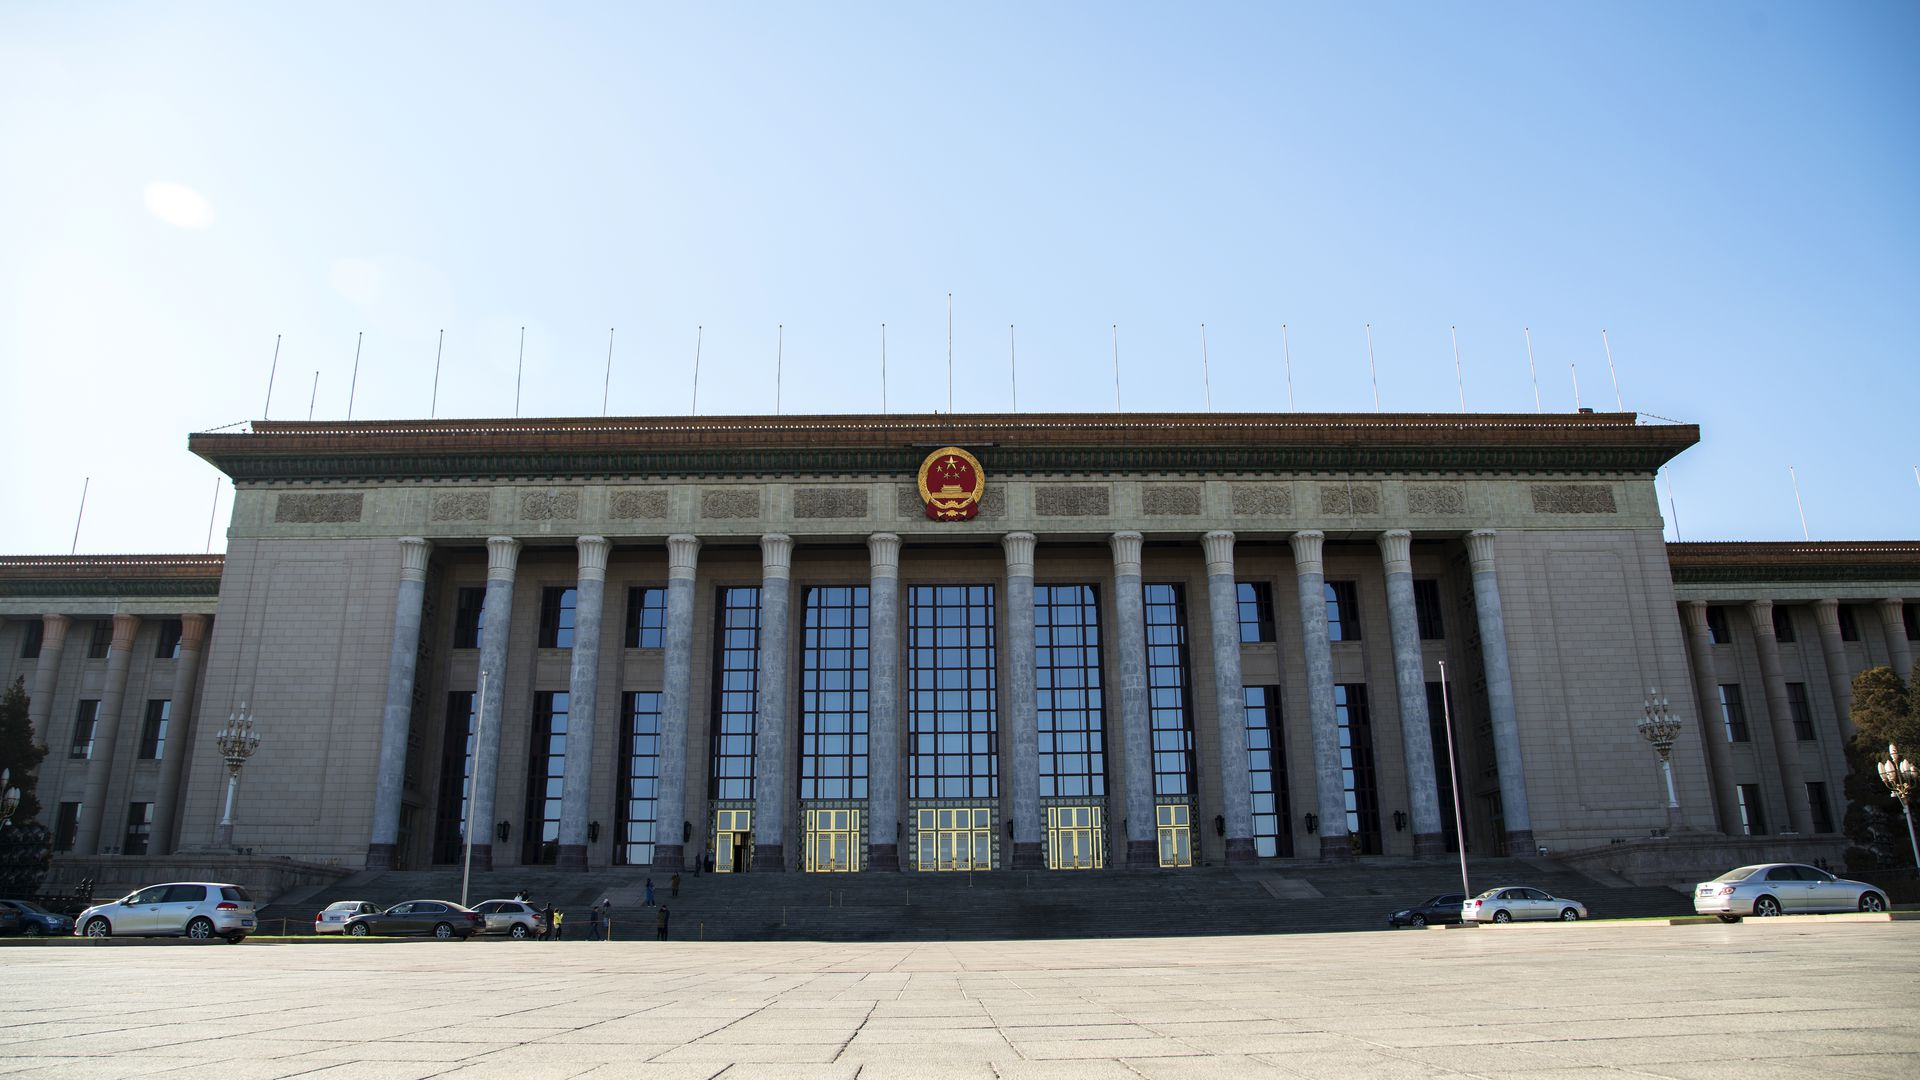 The Great Hall of the People, locate at the west of Tiananmen square. Two sessions (NPC and CPPCC) are held here on March every year.